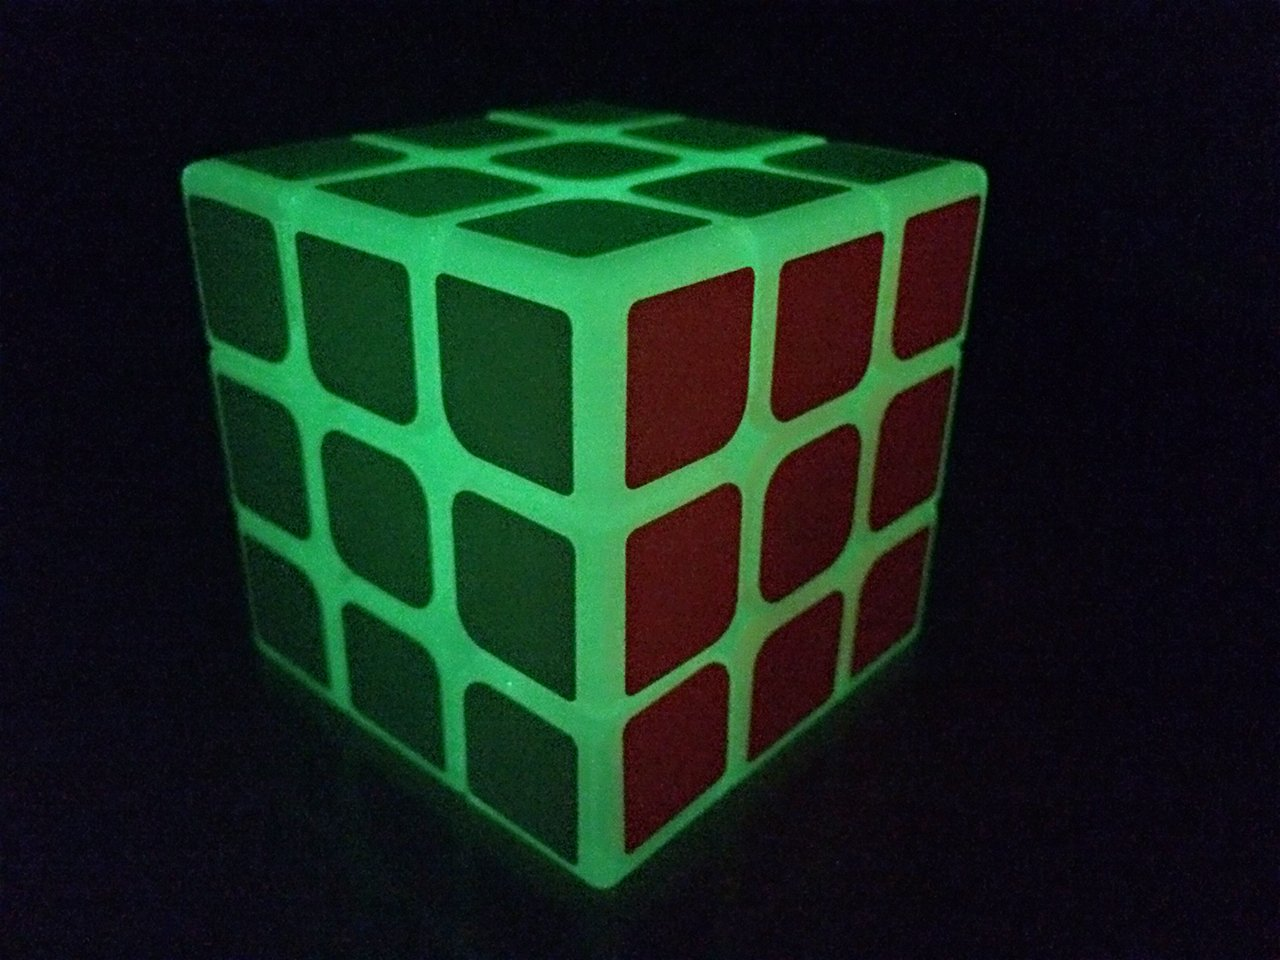 2016 NEW HOT SPEED CUBE GLOW IN THE DARK Magic Puzzles Puzzle Cube 3x3 Toys & Games Light up in the Dark